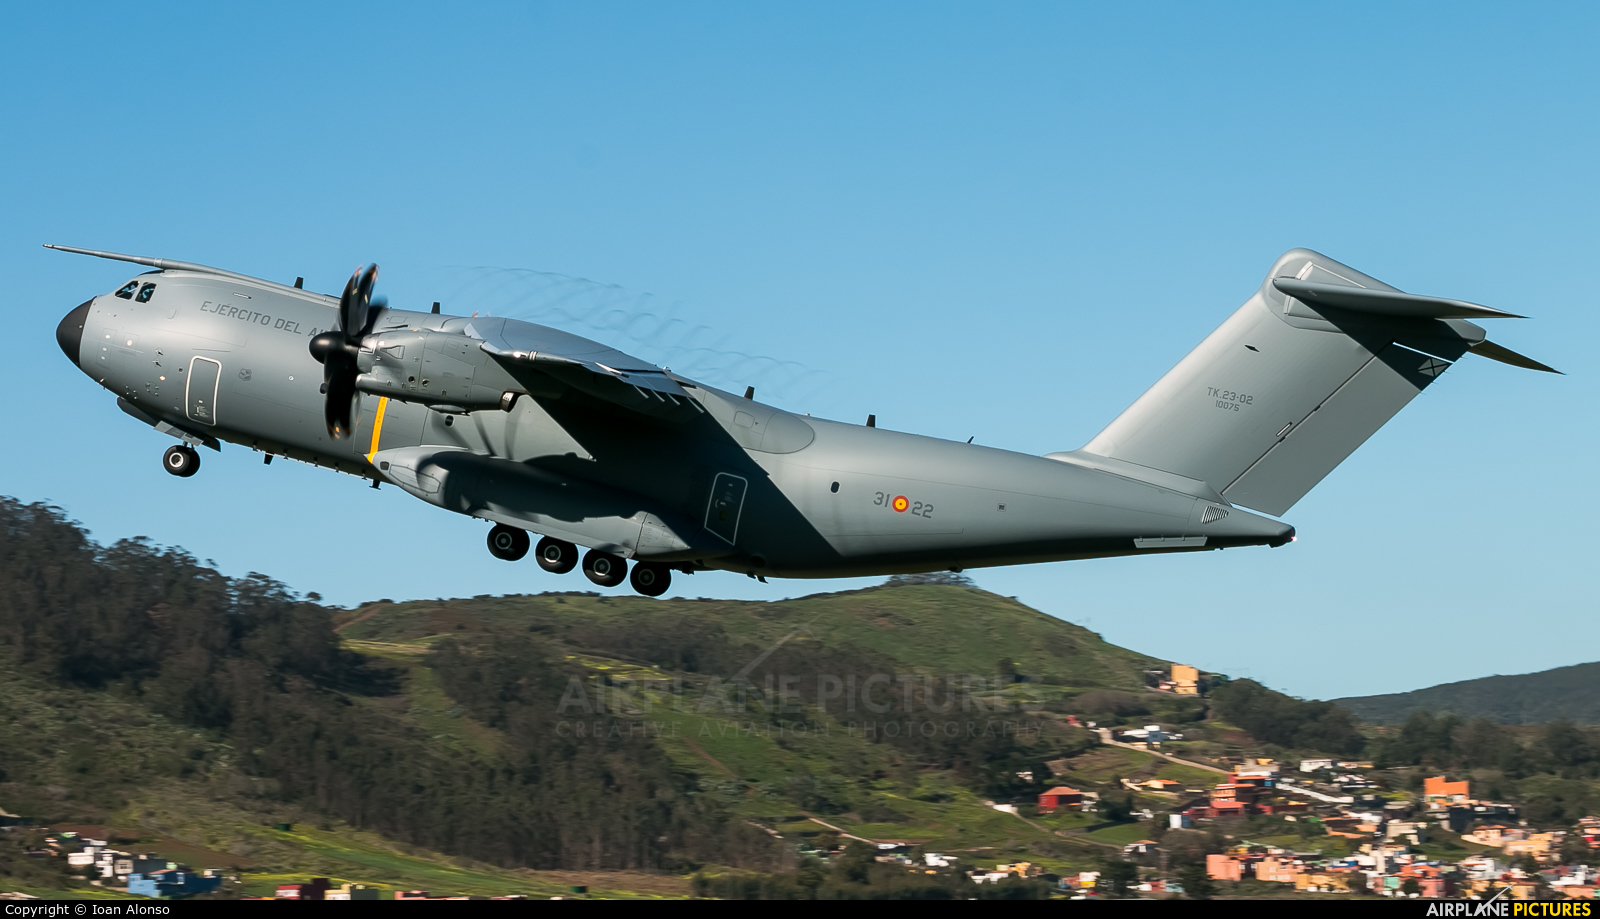 Spain - Air Force TK.23-02 aircraft at Tenerife Norte - Los Rodeos